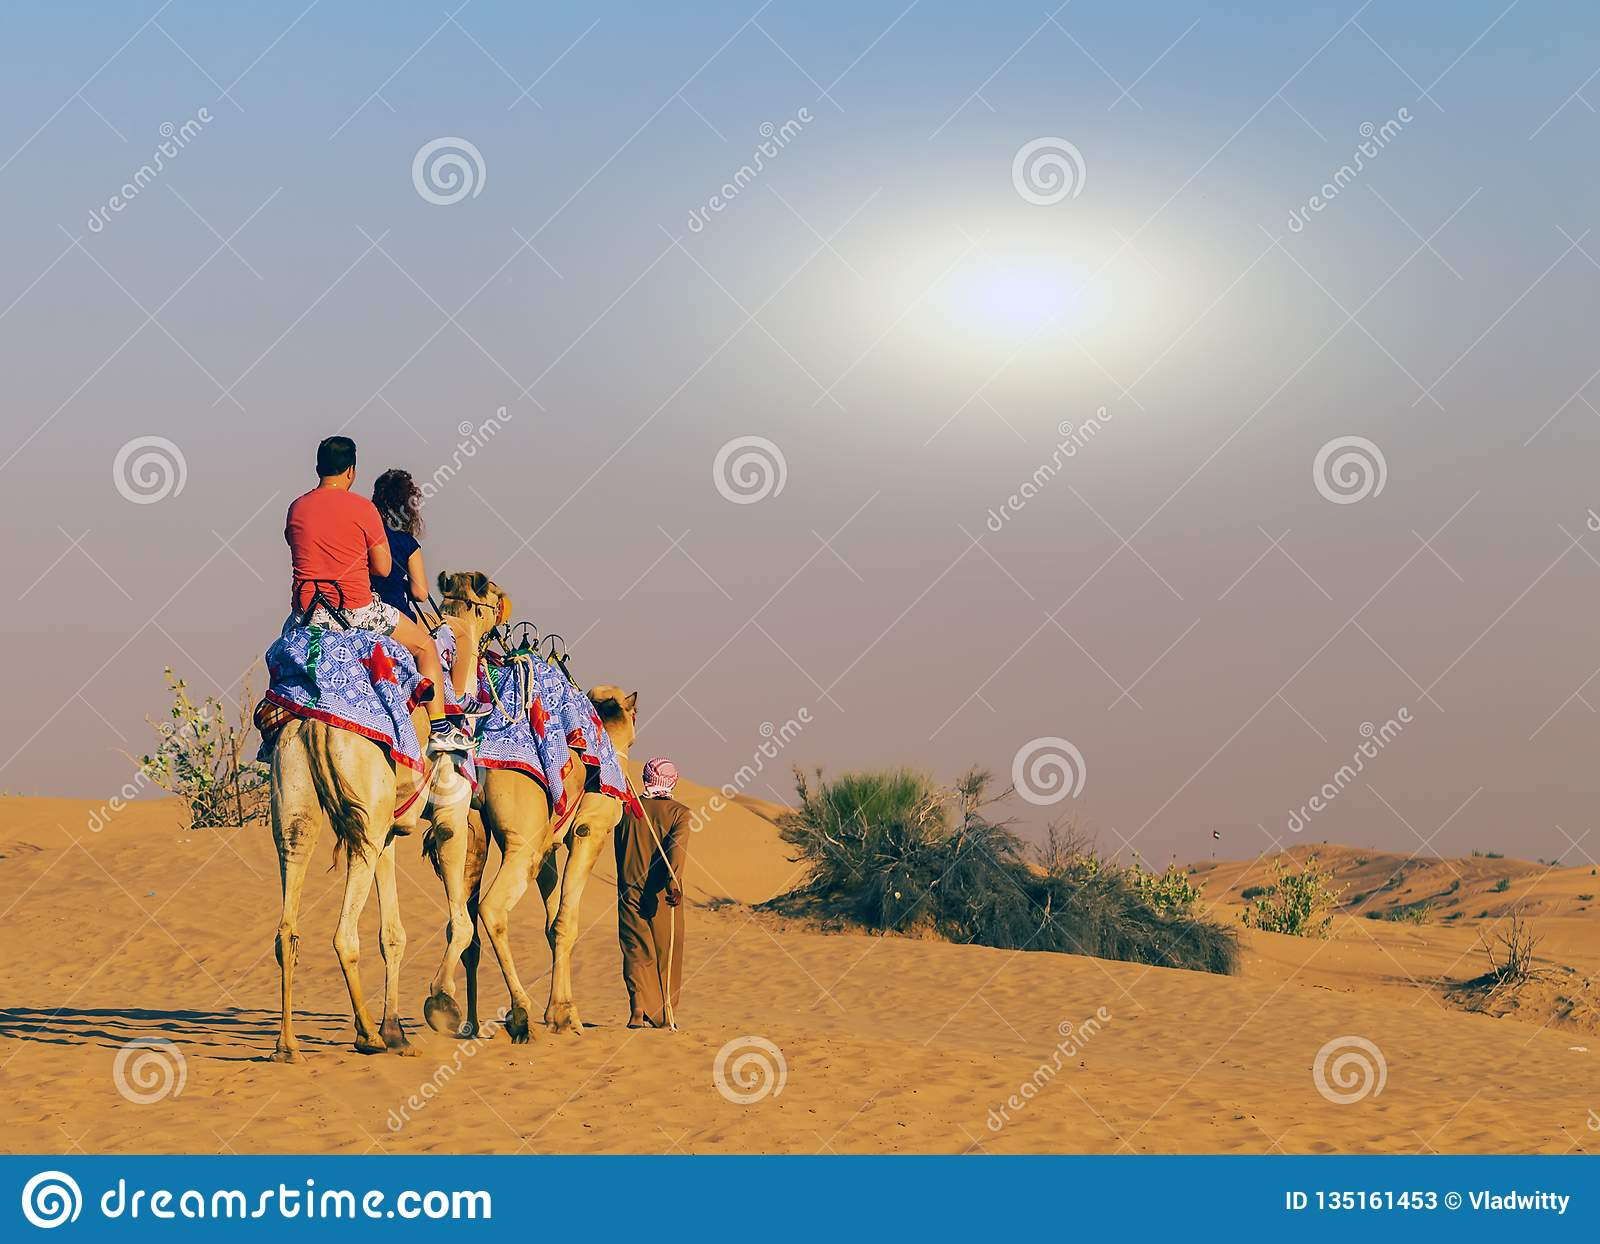 Spring Comes To Dunes >> Spring Sunset Camel Safari On Sand Dunes Editorial Stock Photo